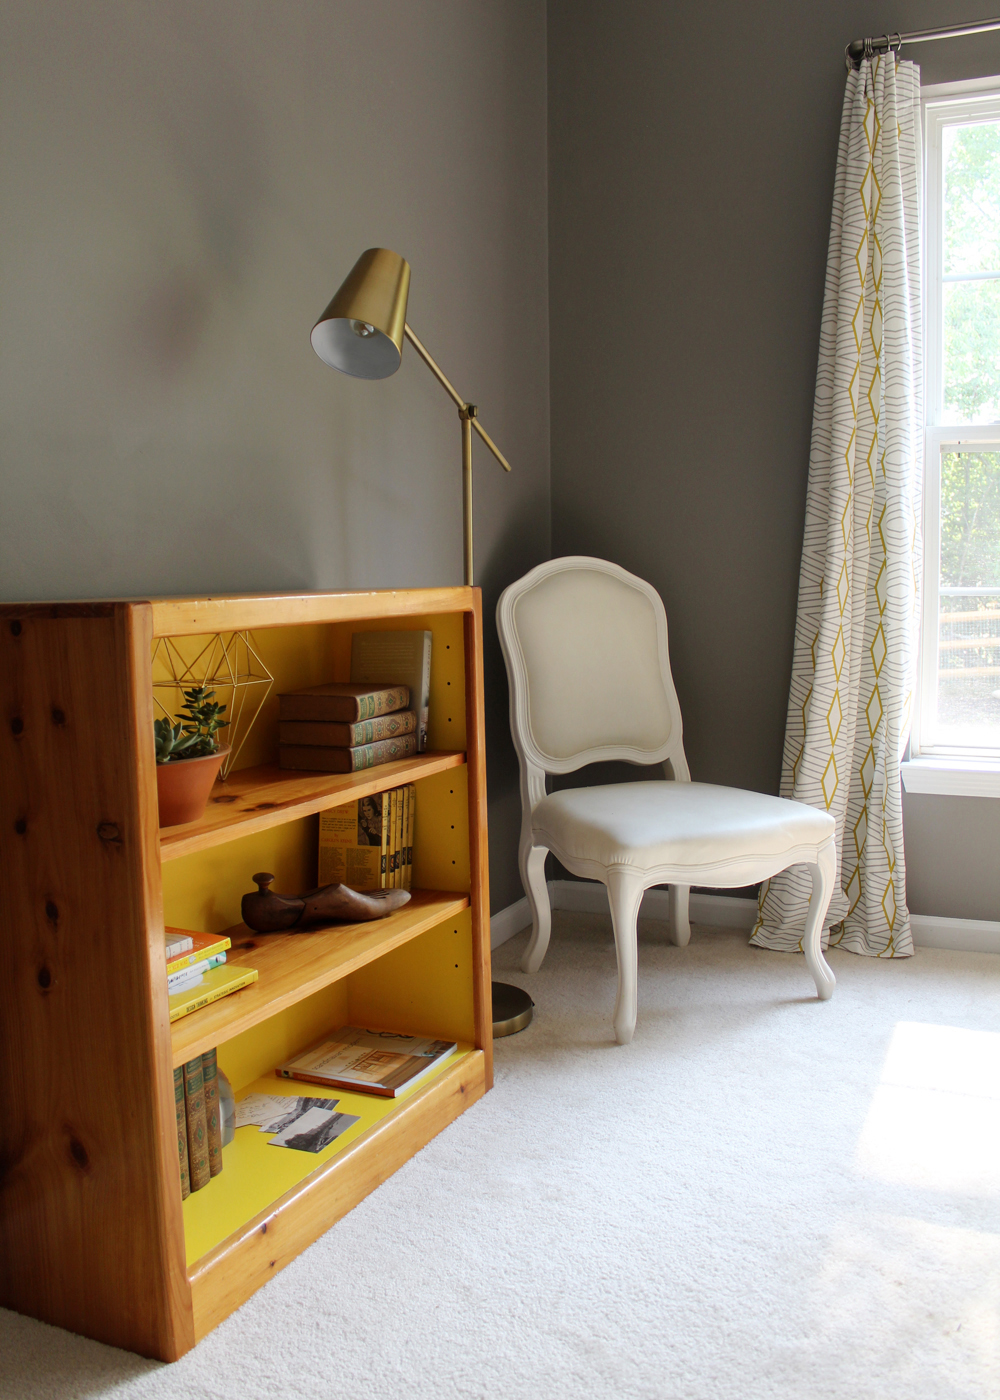 tips for painting a bookcase bright yellow (DIY thrift store bookcase painted Sherwin Williams Cheerful) walls painted SW Dovetail Gray